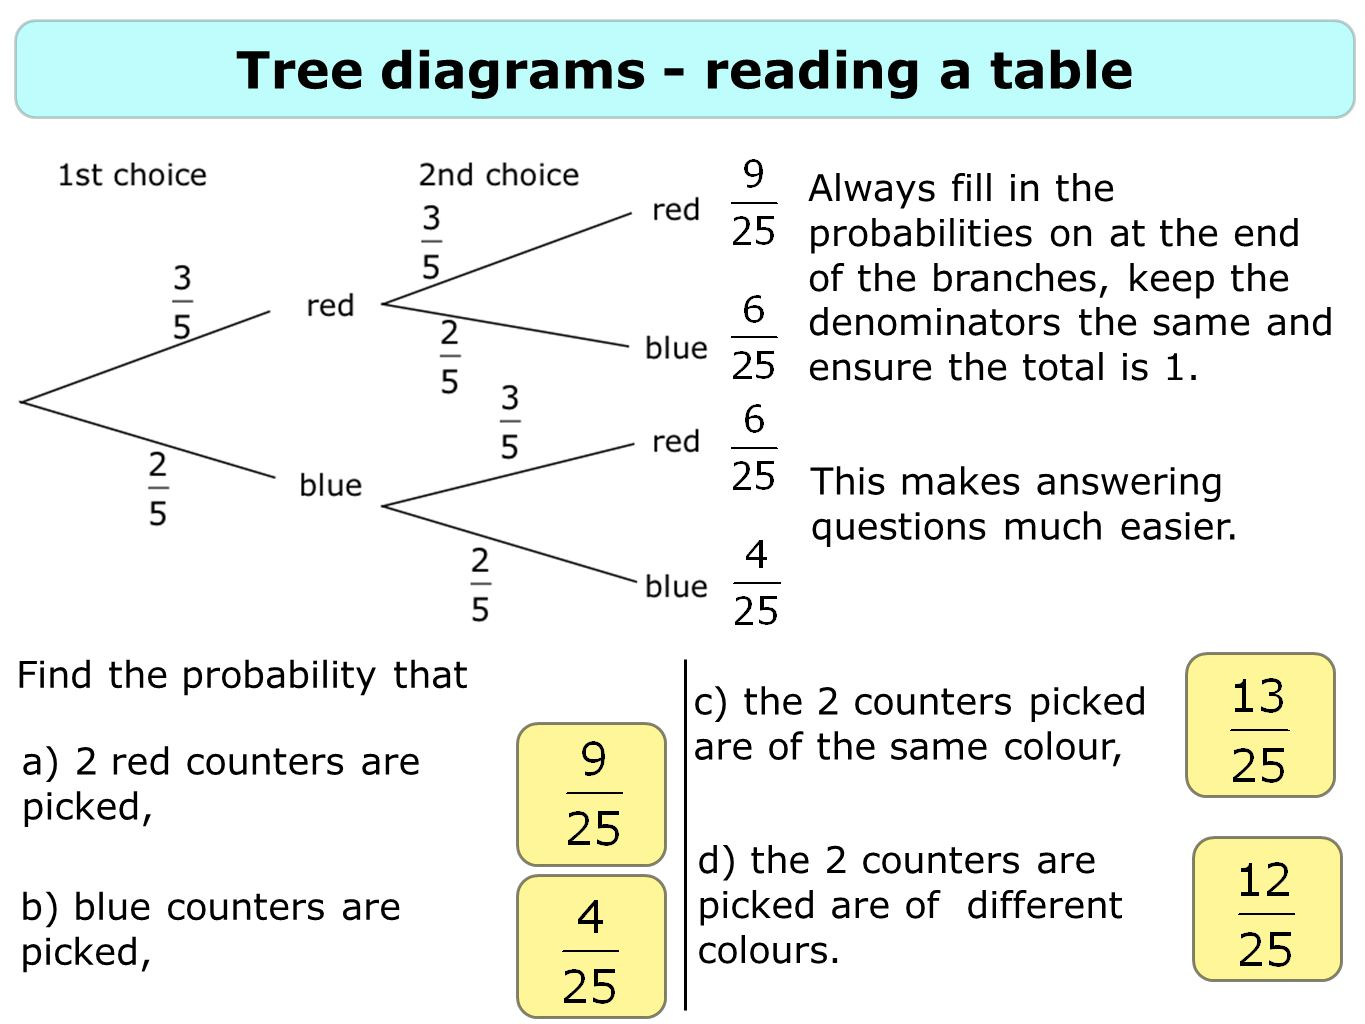 Worksheet probability tree diagram worksheet worksheet fun helping with math problems learning never stops great word problem homework help music questions lbartman com com worksheet probability tree diagram ccuart Choice Image